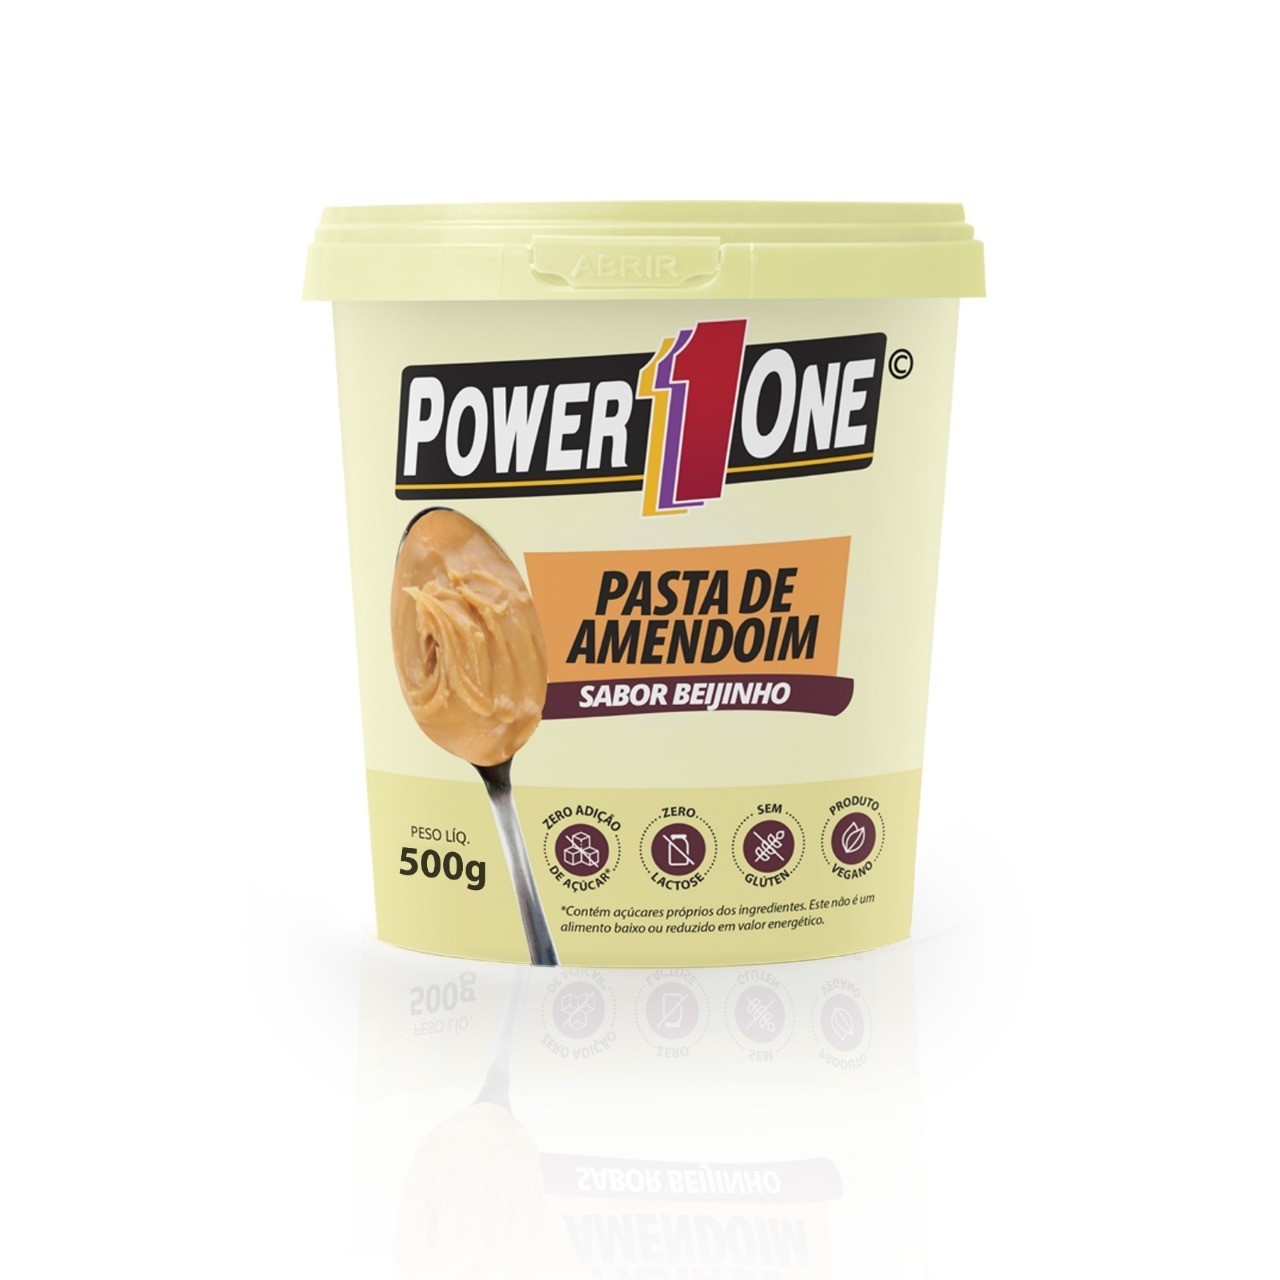 Pasta de Amendoim Sabor Beijinho (500g) - Power1one